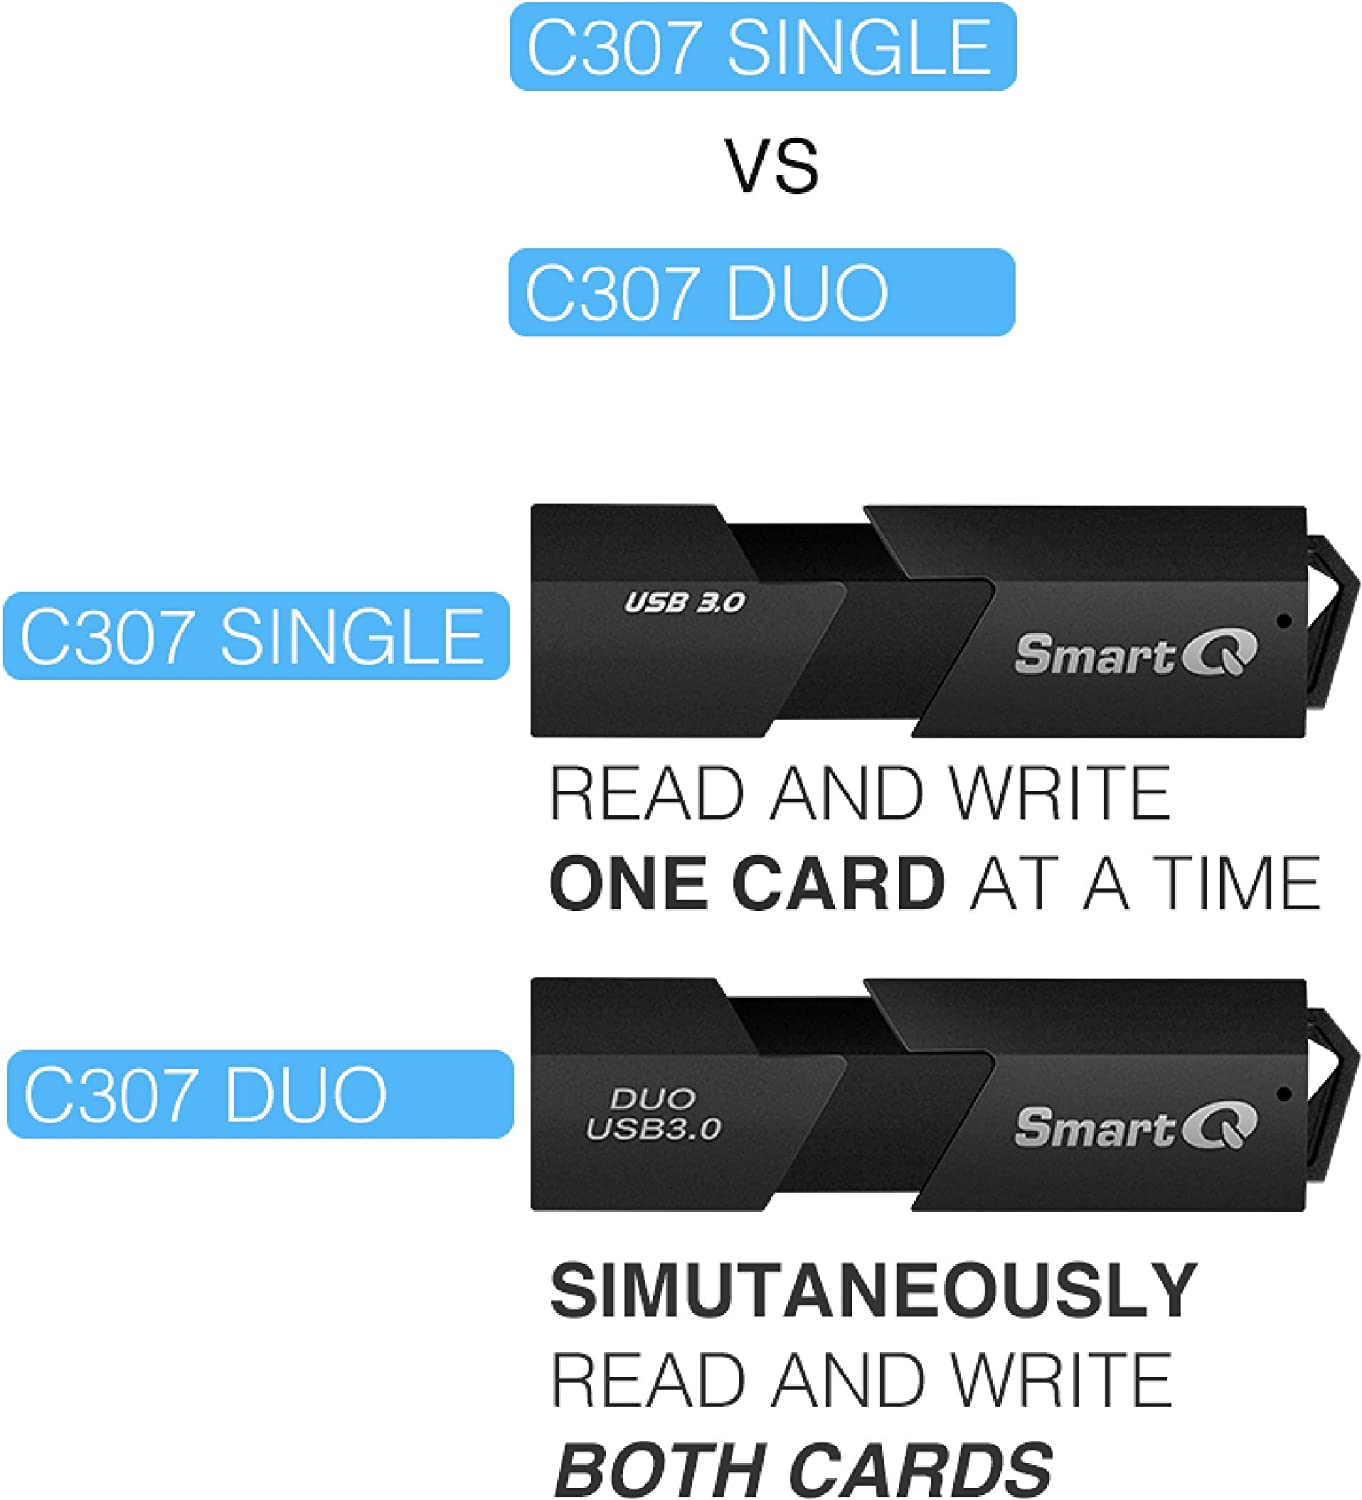 SmartQ C307 DUO SD Card Reader Portable USB 3.0 Flash Memory Card Adapter Hub for SD, Micro SD, SDXC, SDHC, MMC, Micro SDXC, Micro SDHC, UHS-I for Mac, Windows, Linux, Chrome, PC, Laptop, Switch (Duo): Computers & Accessories